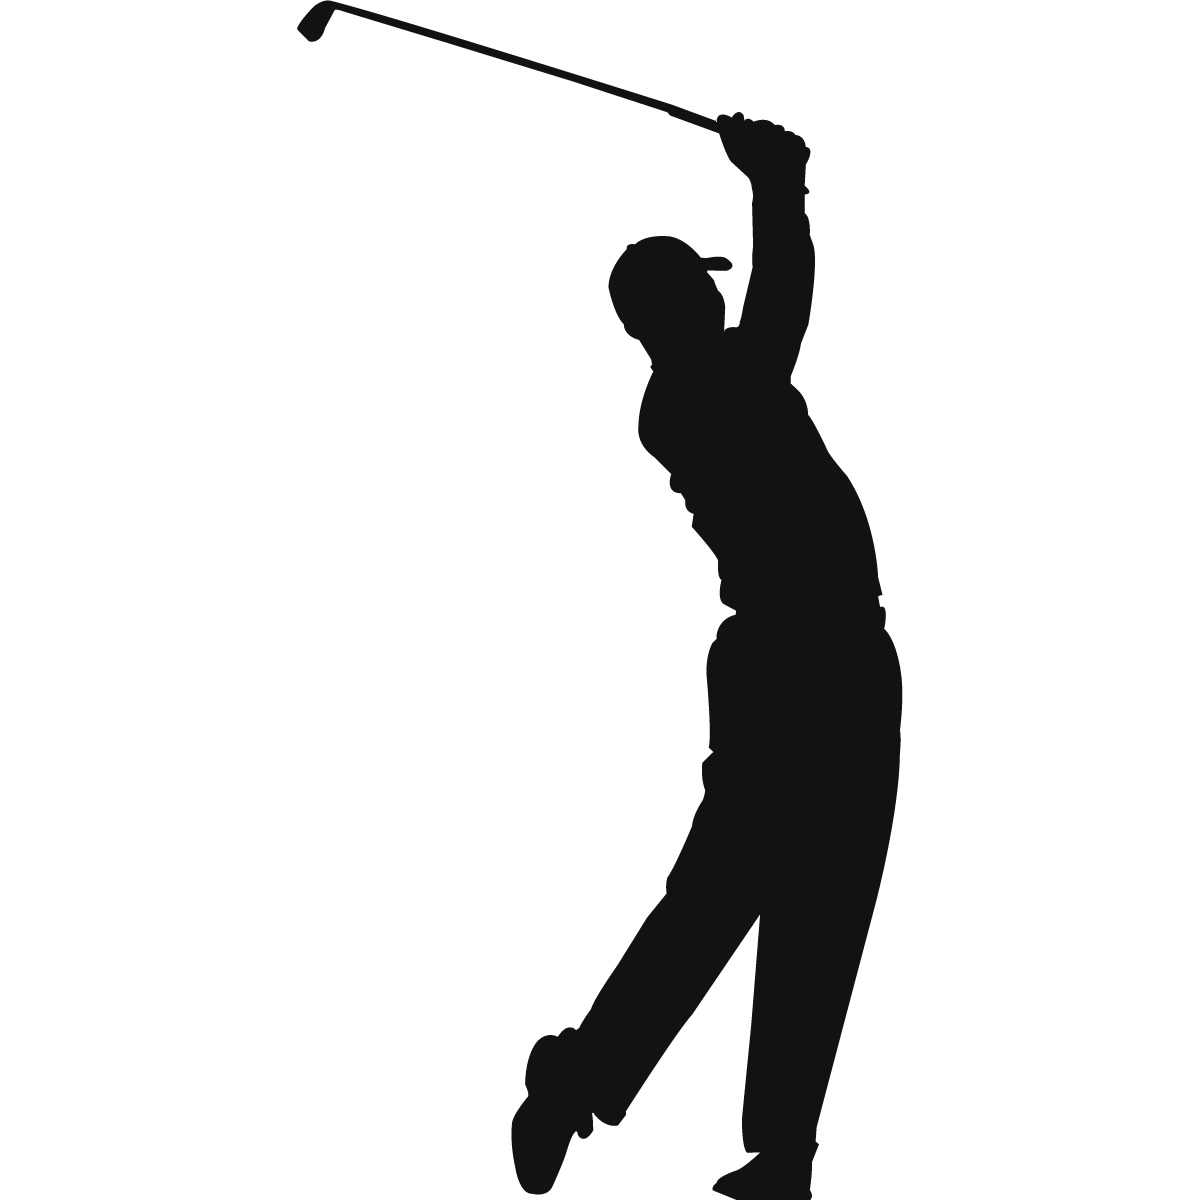 hight resolution of 1200x1200 golf clip art microsoft free clipart images 4